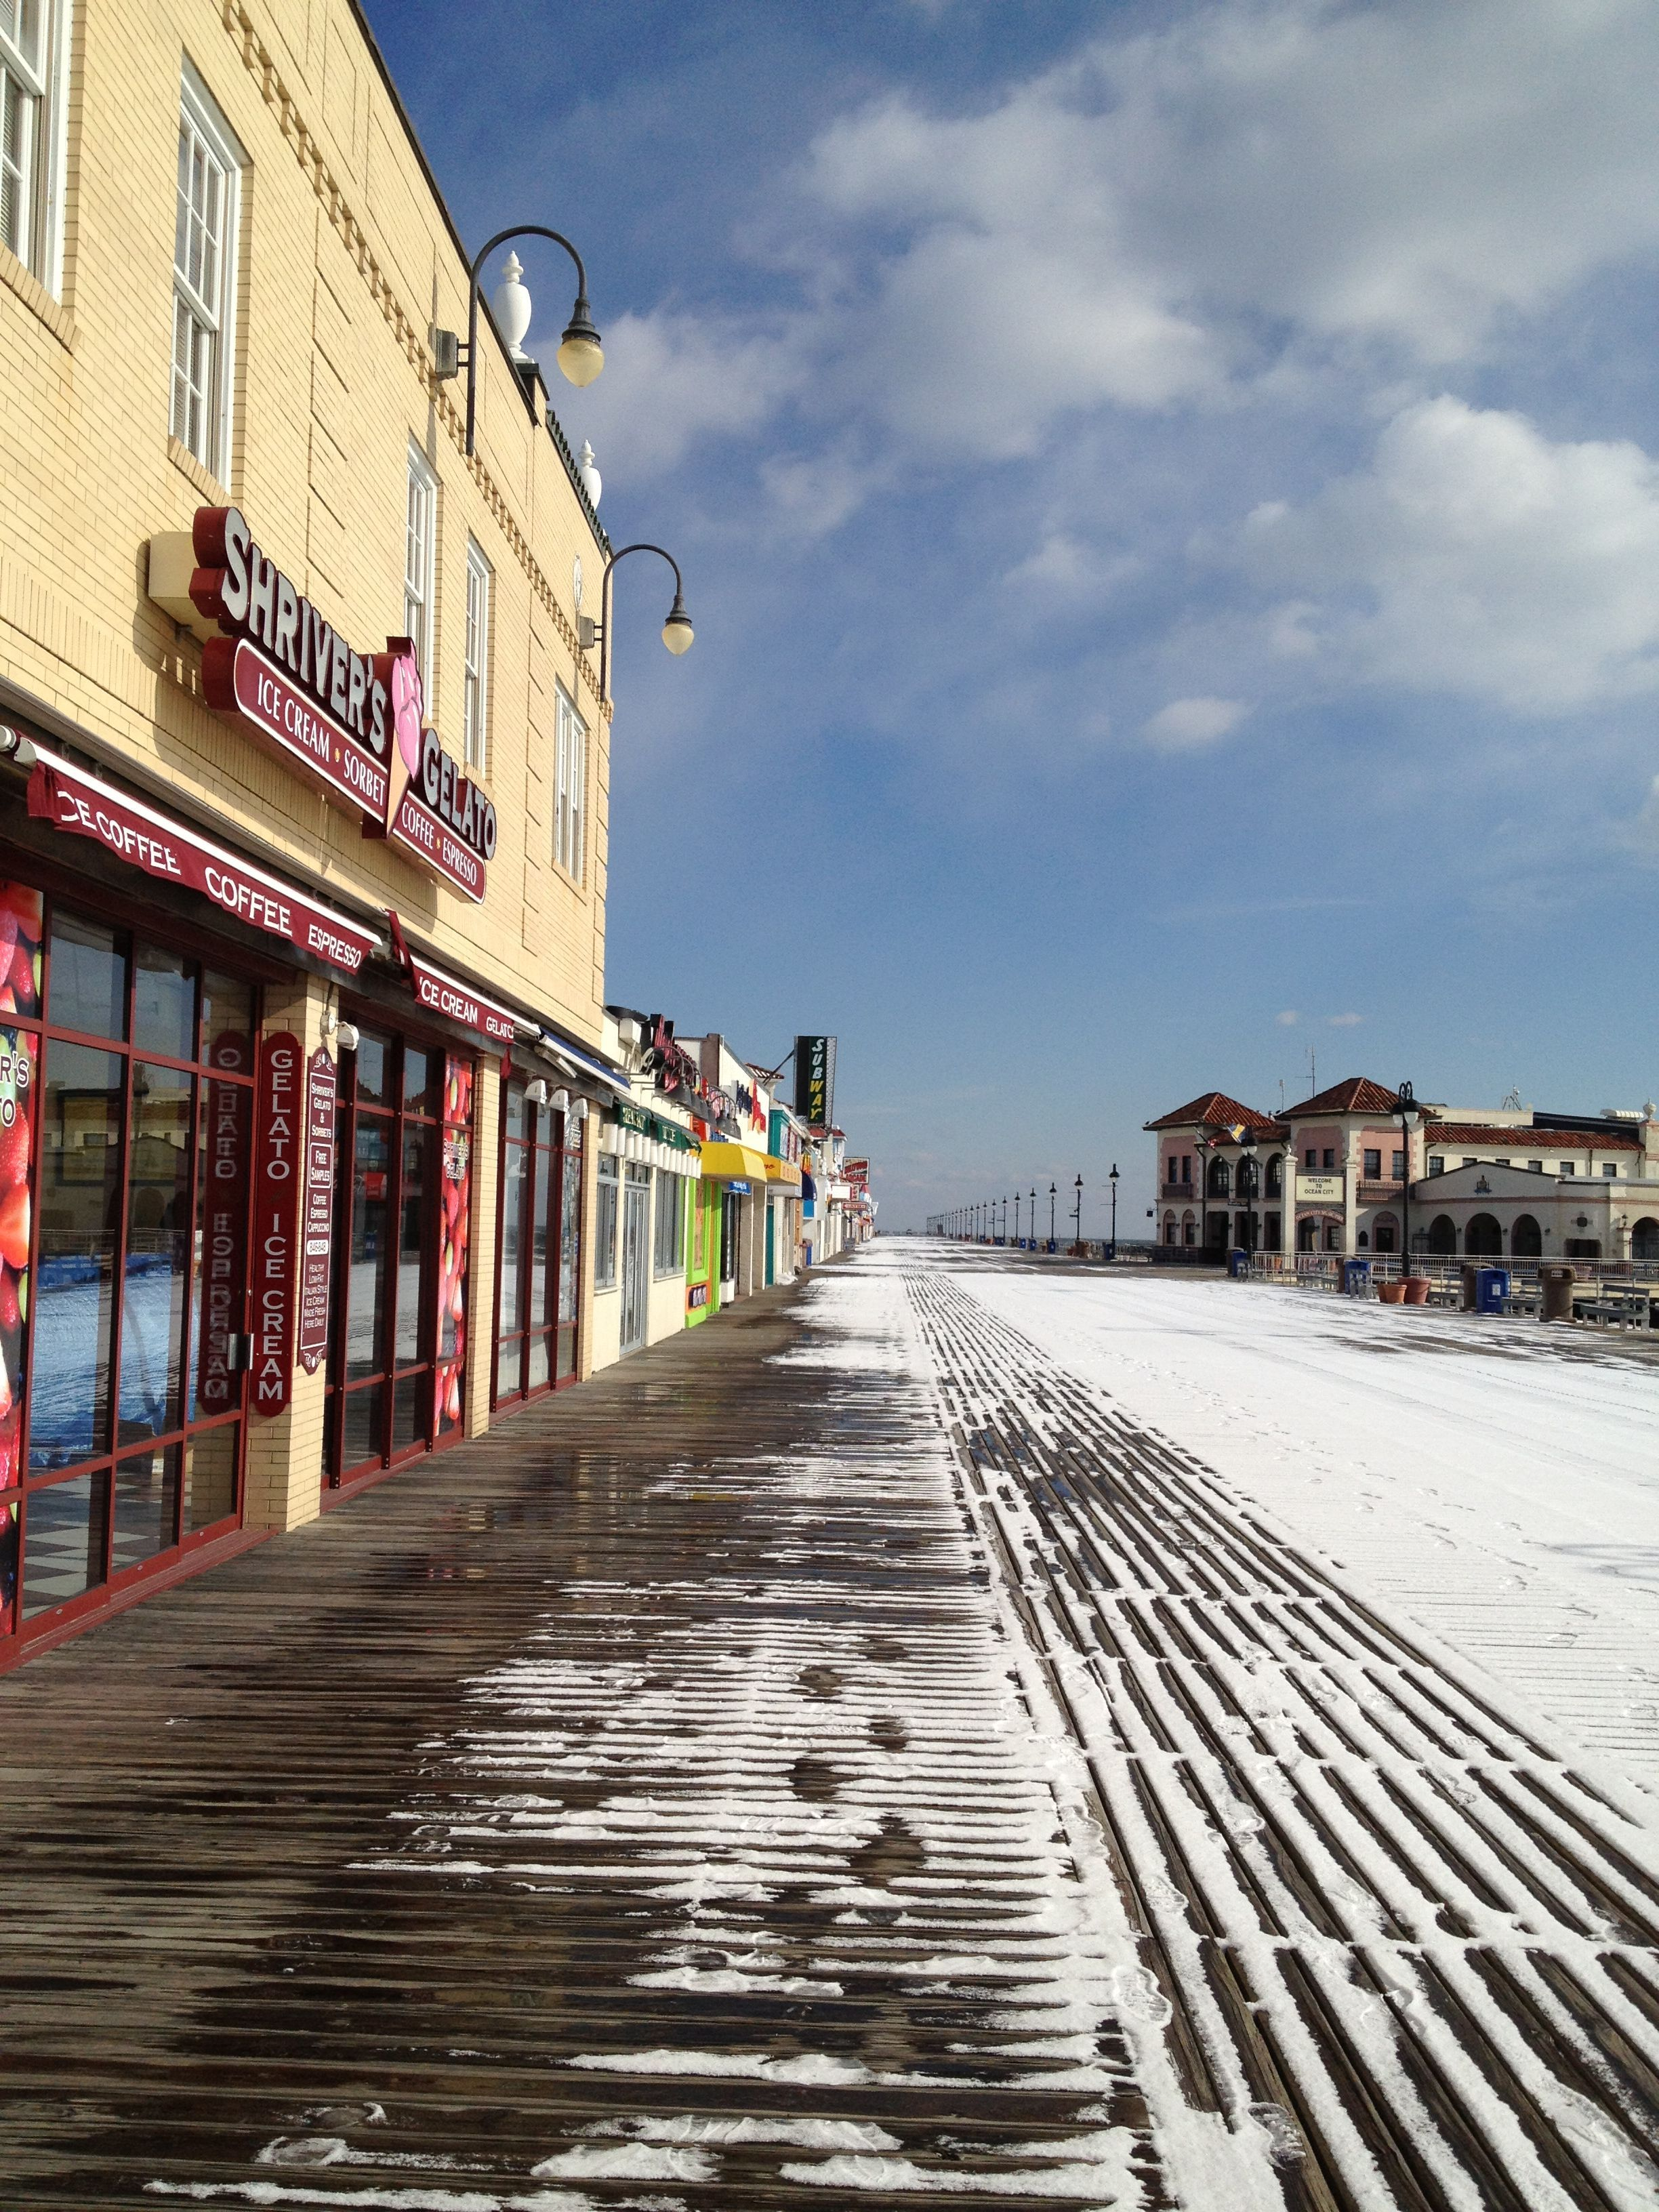 Snow Covered Boardwalk Ocean City Nj Ocean City Nj Bethany Beach Boardwalk New Jersey Beaches